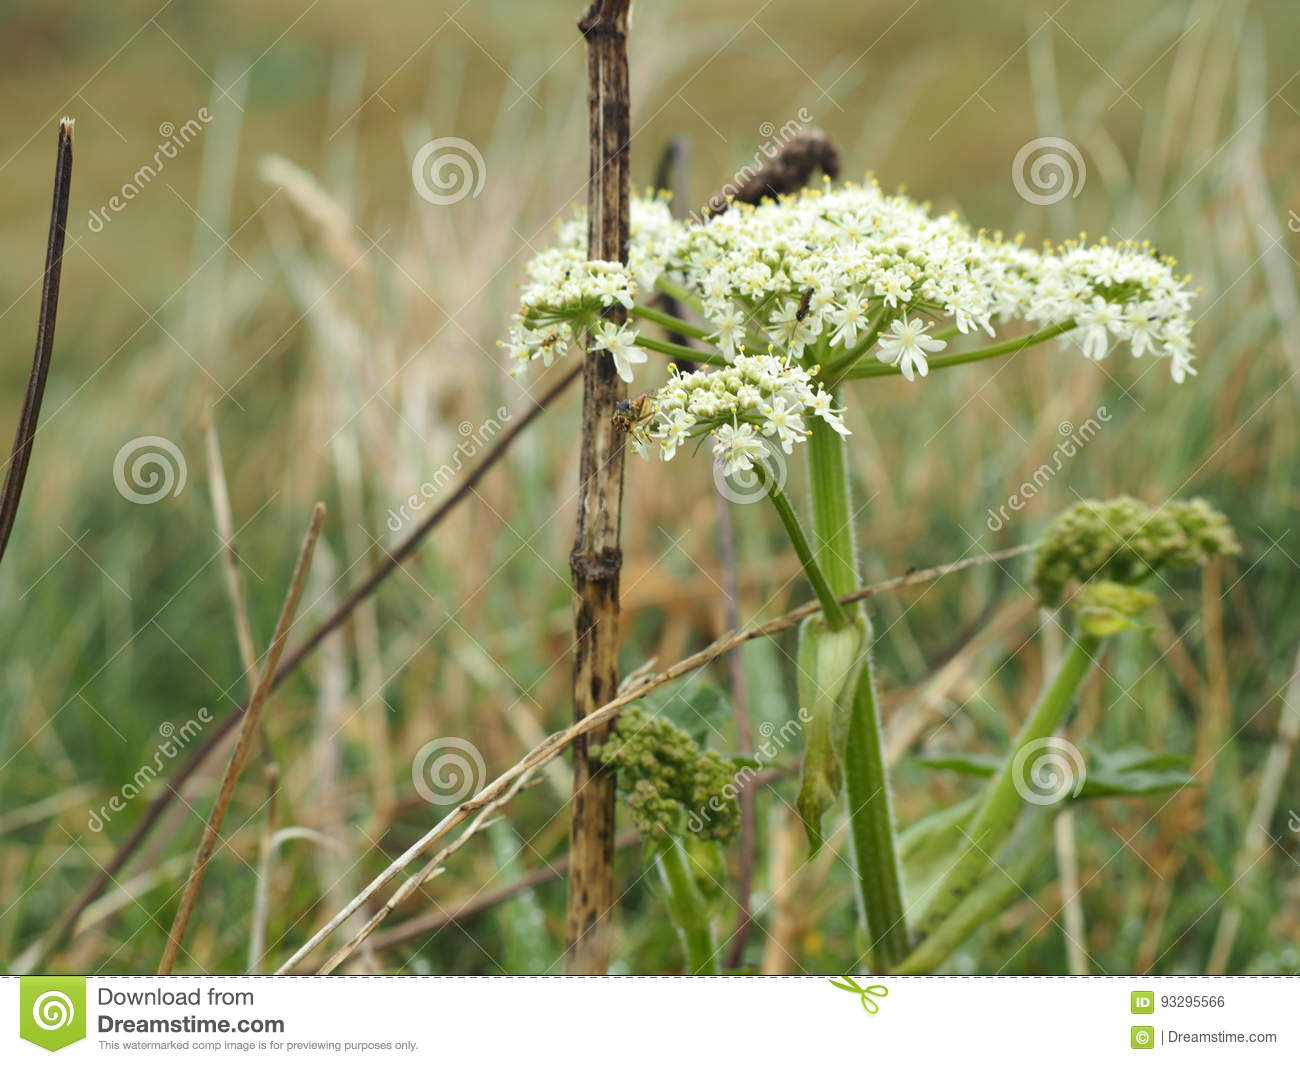 White Flowers In A Marsh Stock Photo Image Of Flowers 93295566